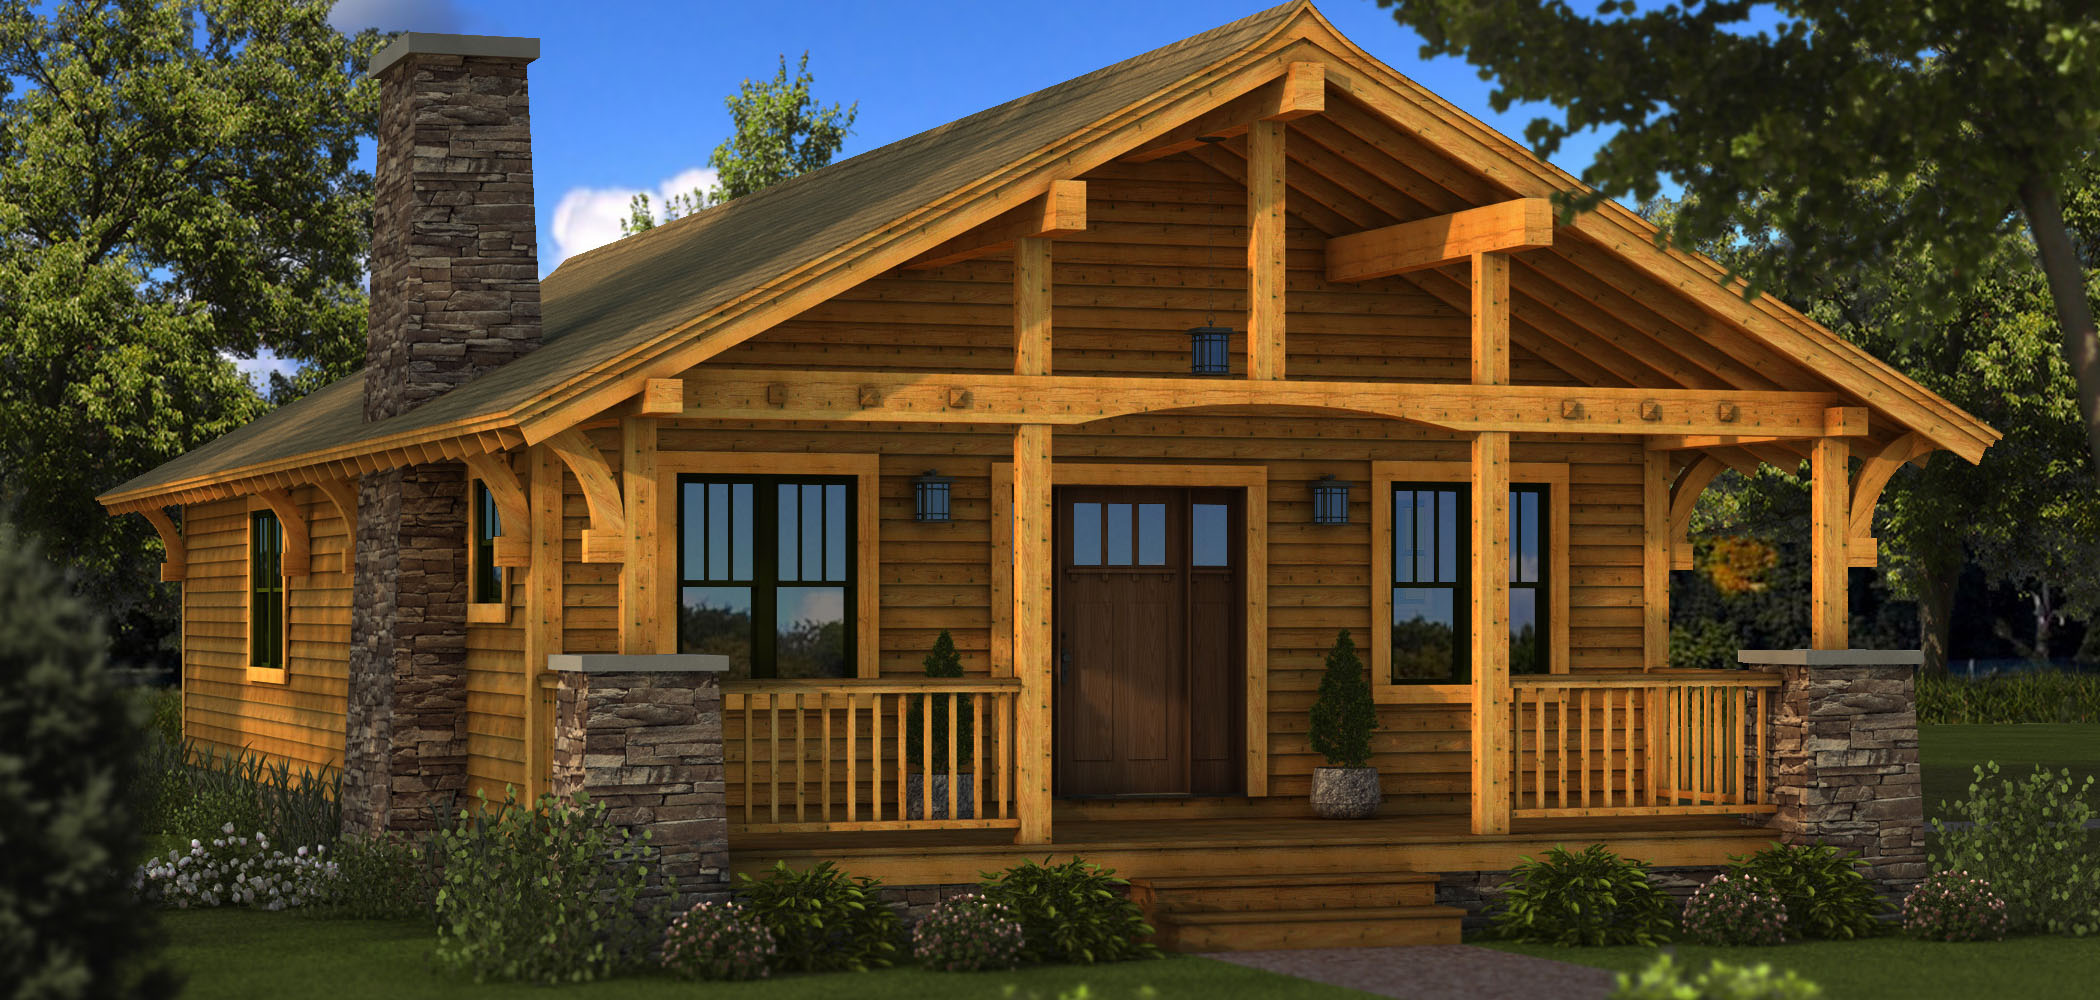 Small Rustic Log Cabins Small Log Cabin Homes Plans